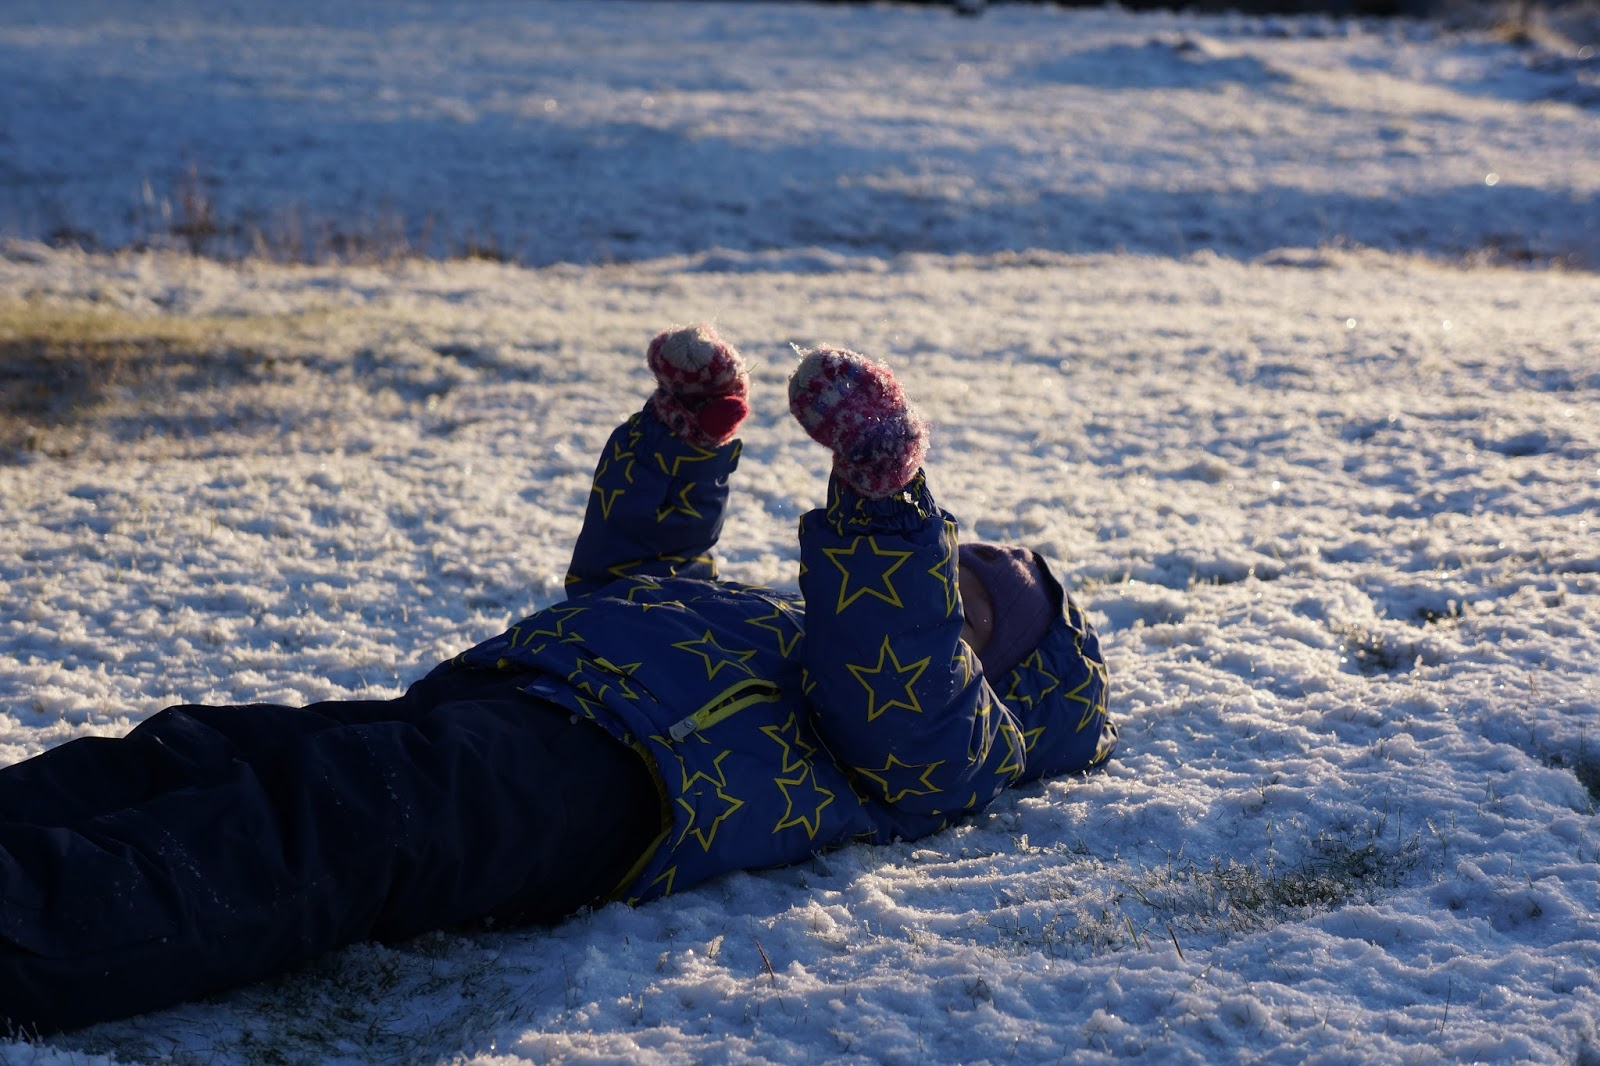 a child lying in snow wearing ski clothing